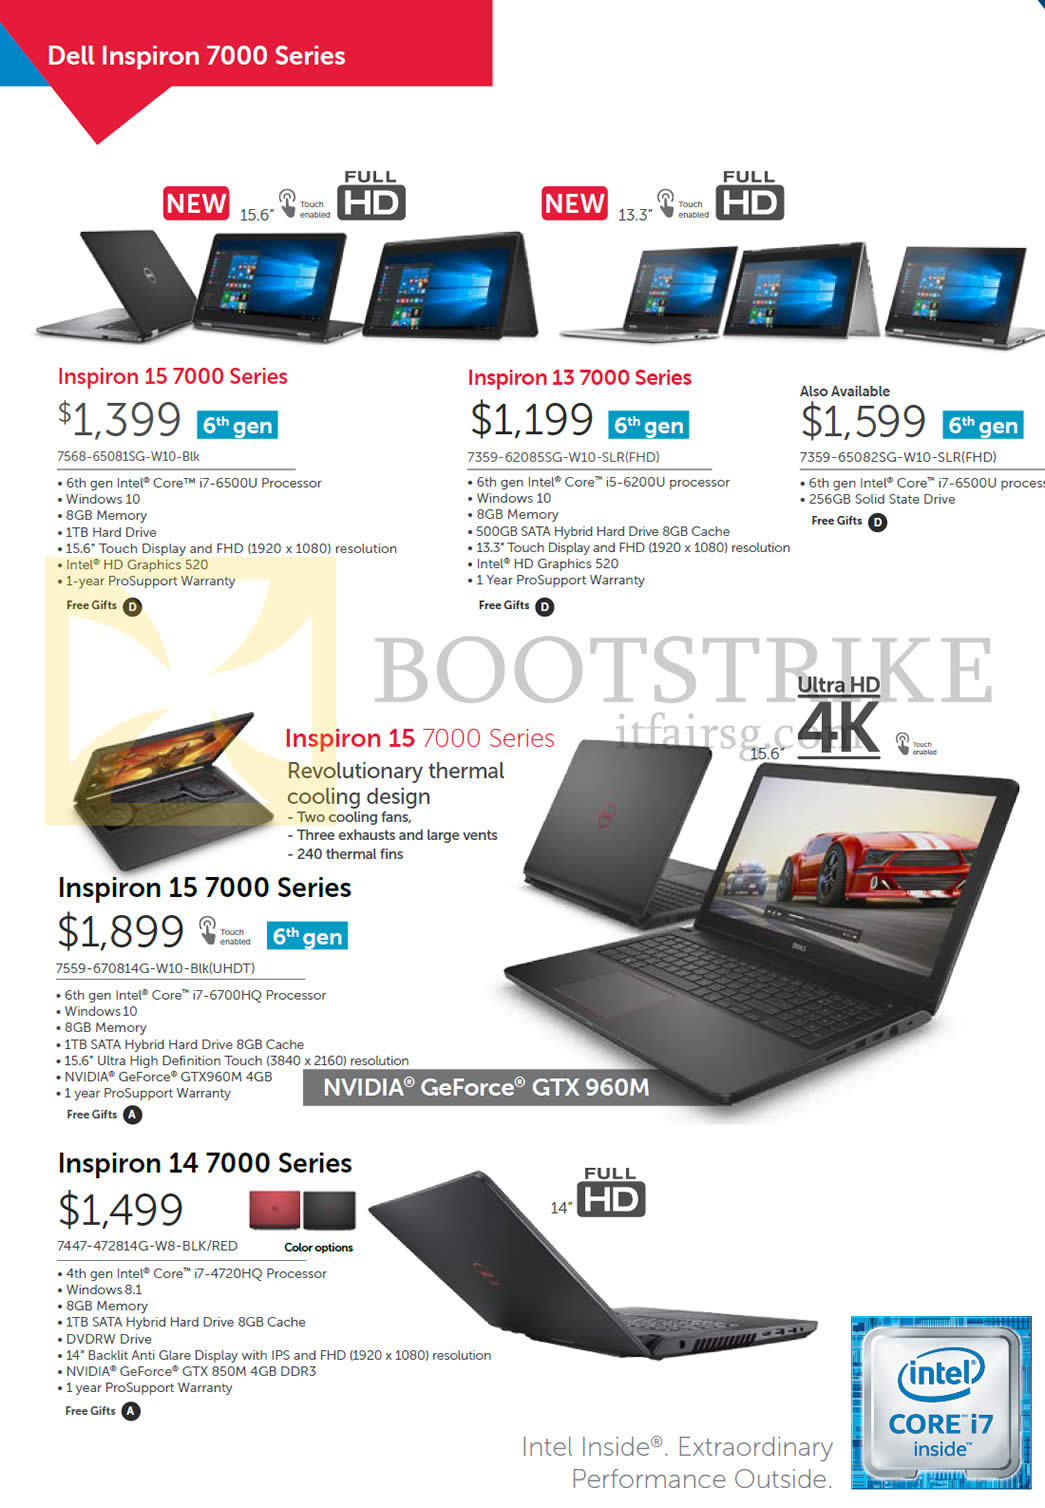 SITEX 2015 price list image brochure of Dell Notebooks Inspiron 7568-65081SG-W10-Blk, 7359-62085SG-W10-SLR, 7359-65082SG-W10-SLR, 7559-670814G-W10-Blk, 7447-472814G-W8-BLK, RED